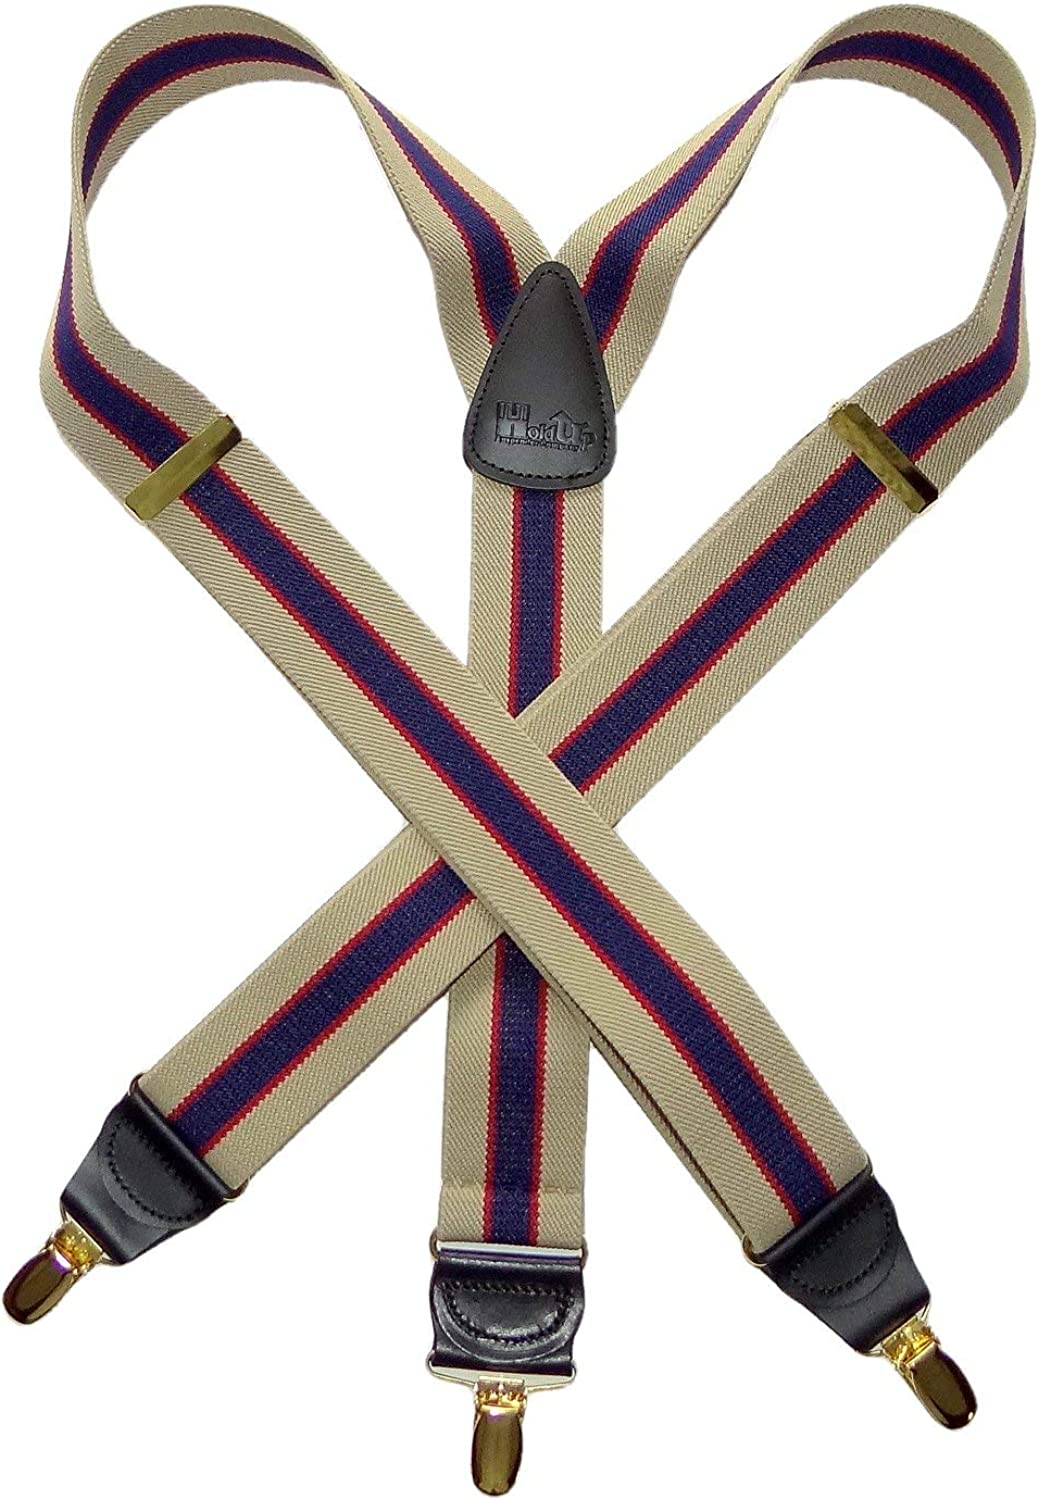 Striped Series Holdup Khaki and Navy Striped Y-back Suspenders with Patented No-slip Gold Tone Clips